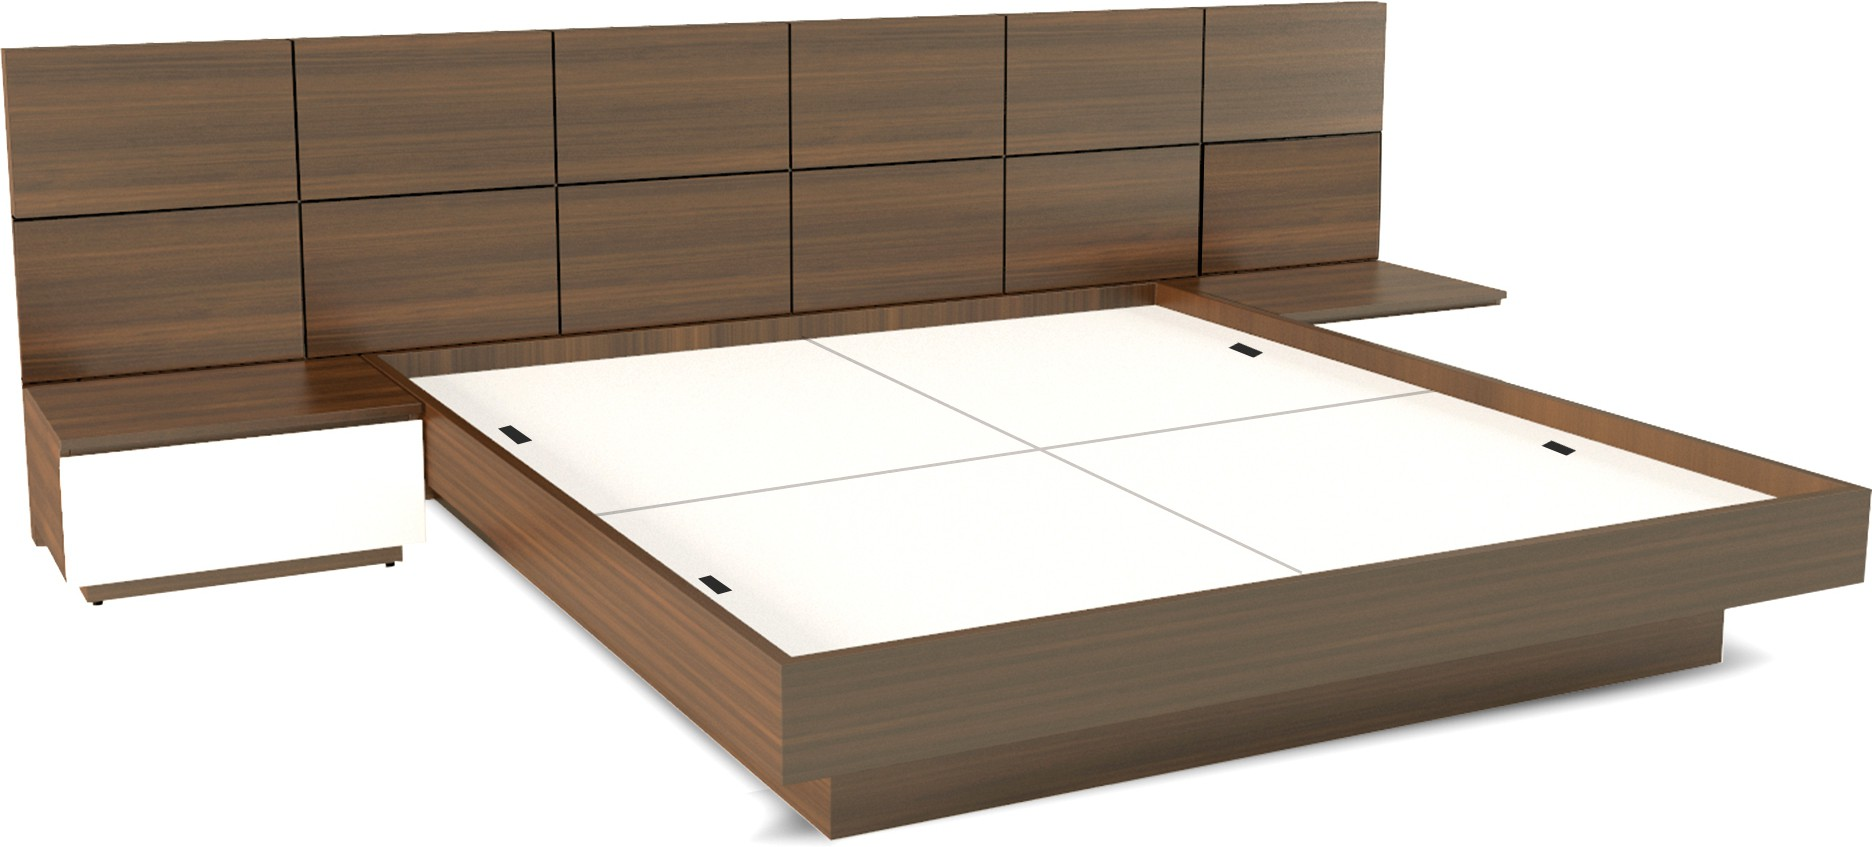 View UNiCOS Horizon Engineered Wood King Bed With Storage(Finish Color -  Matte) Furniture (UNiCOS)